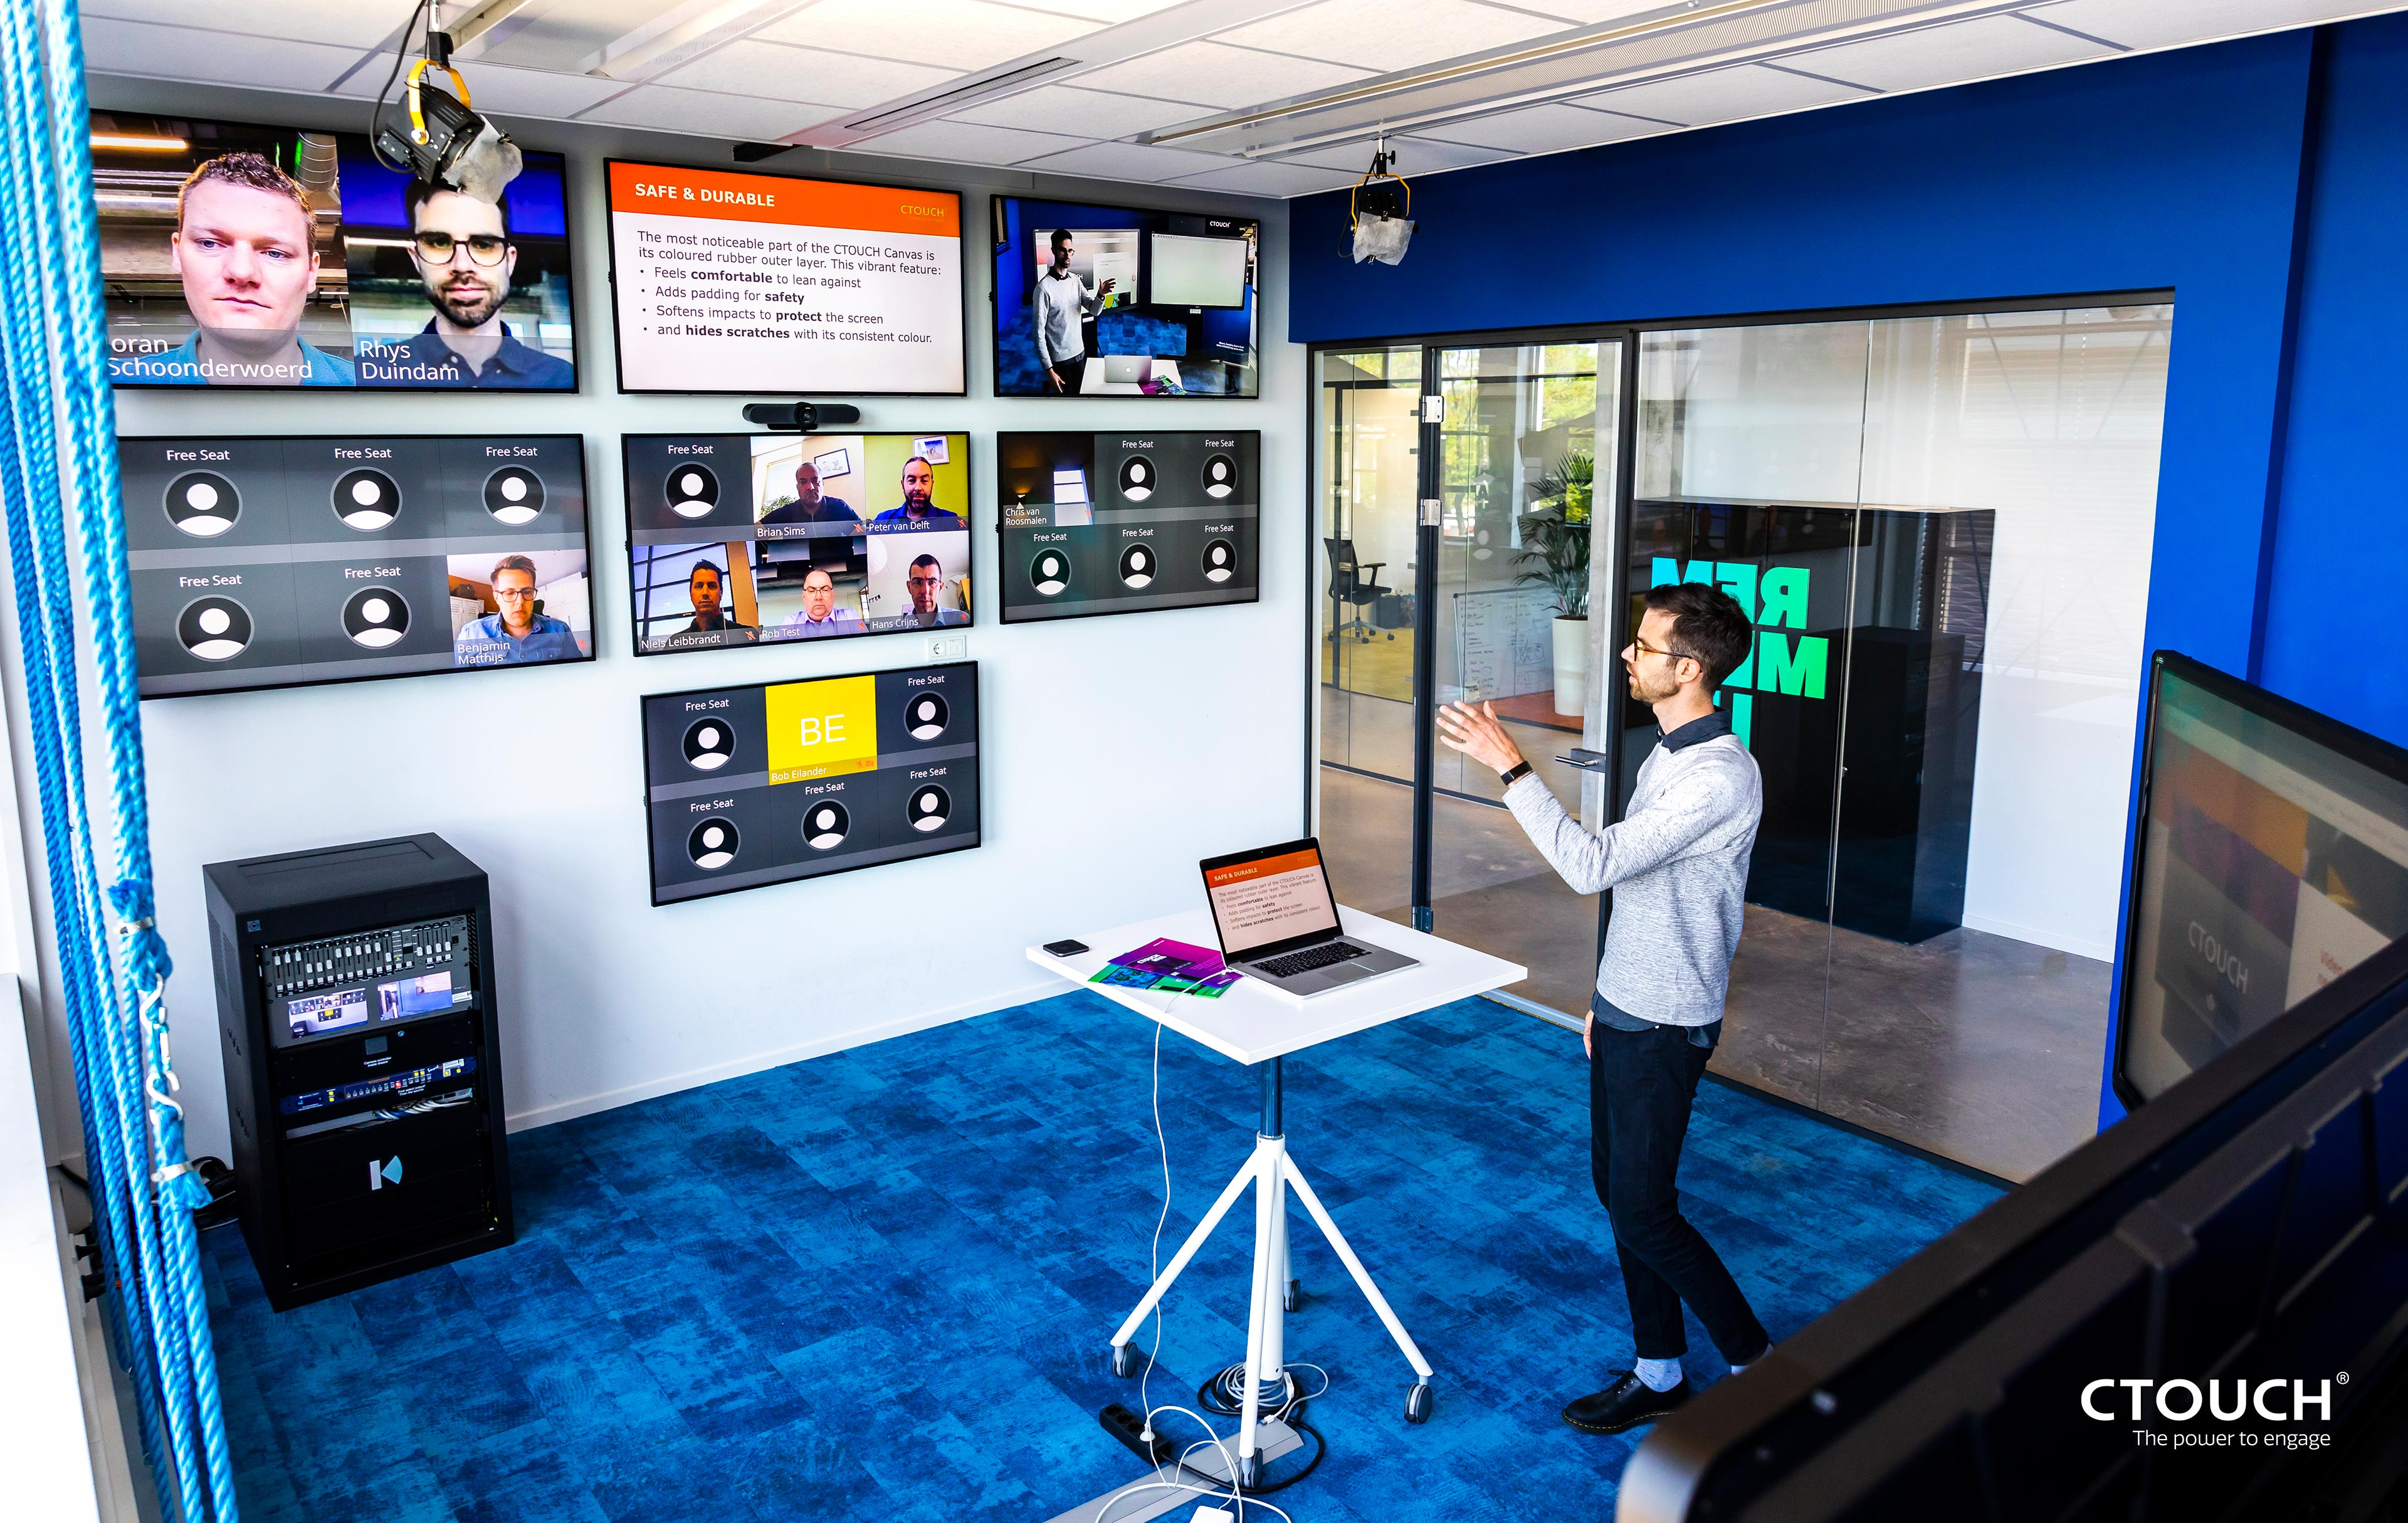 CTOUCH bouwt unieke virtual classroom met Barco en Kinly